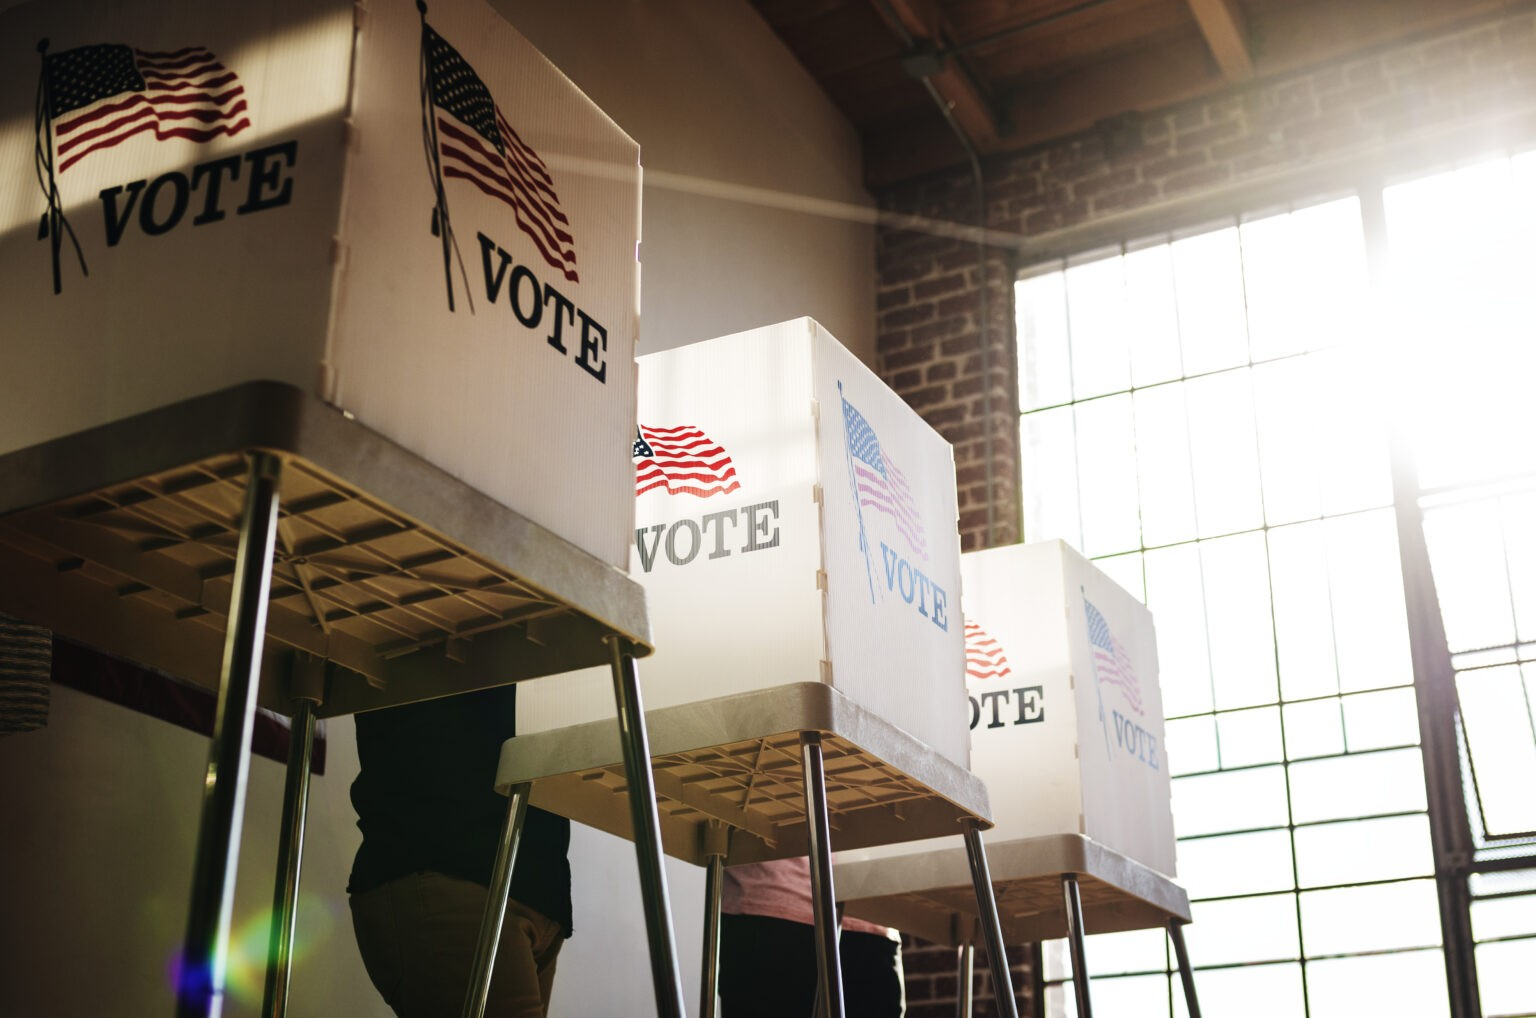 Law enforcement, experts hit the polls to monitor for voter fraud and suppression on Election Day